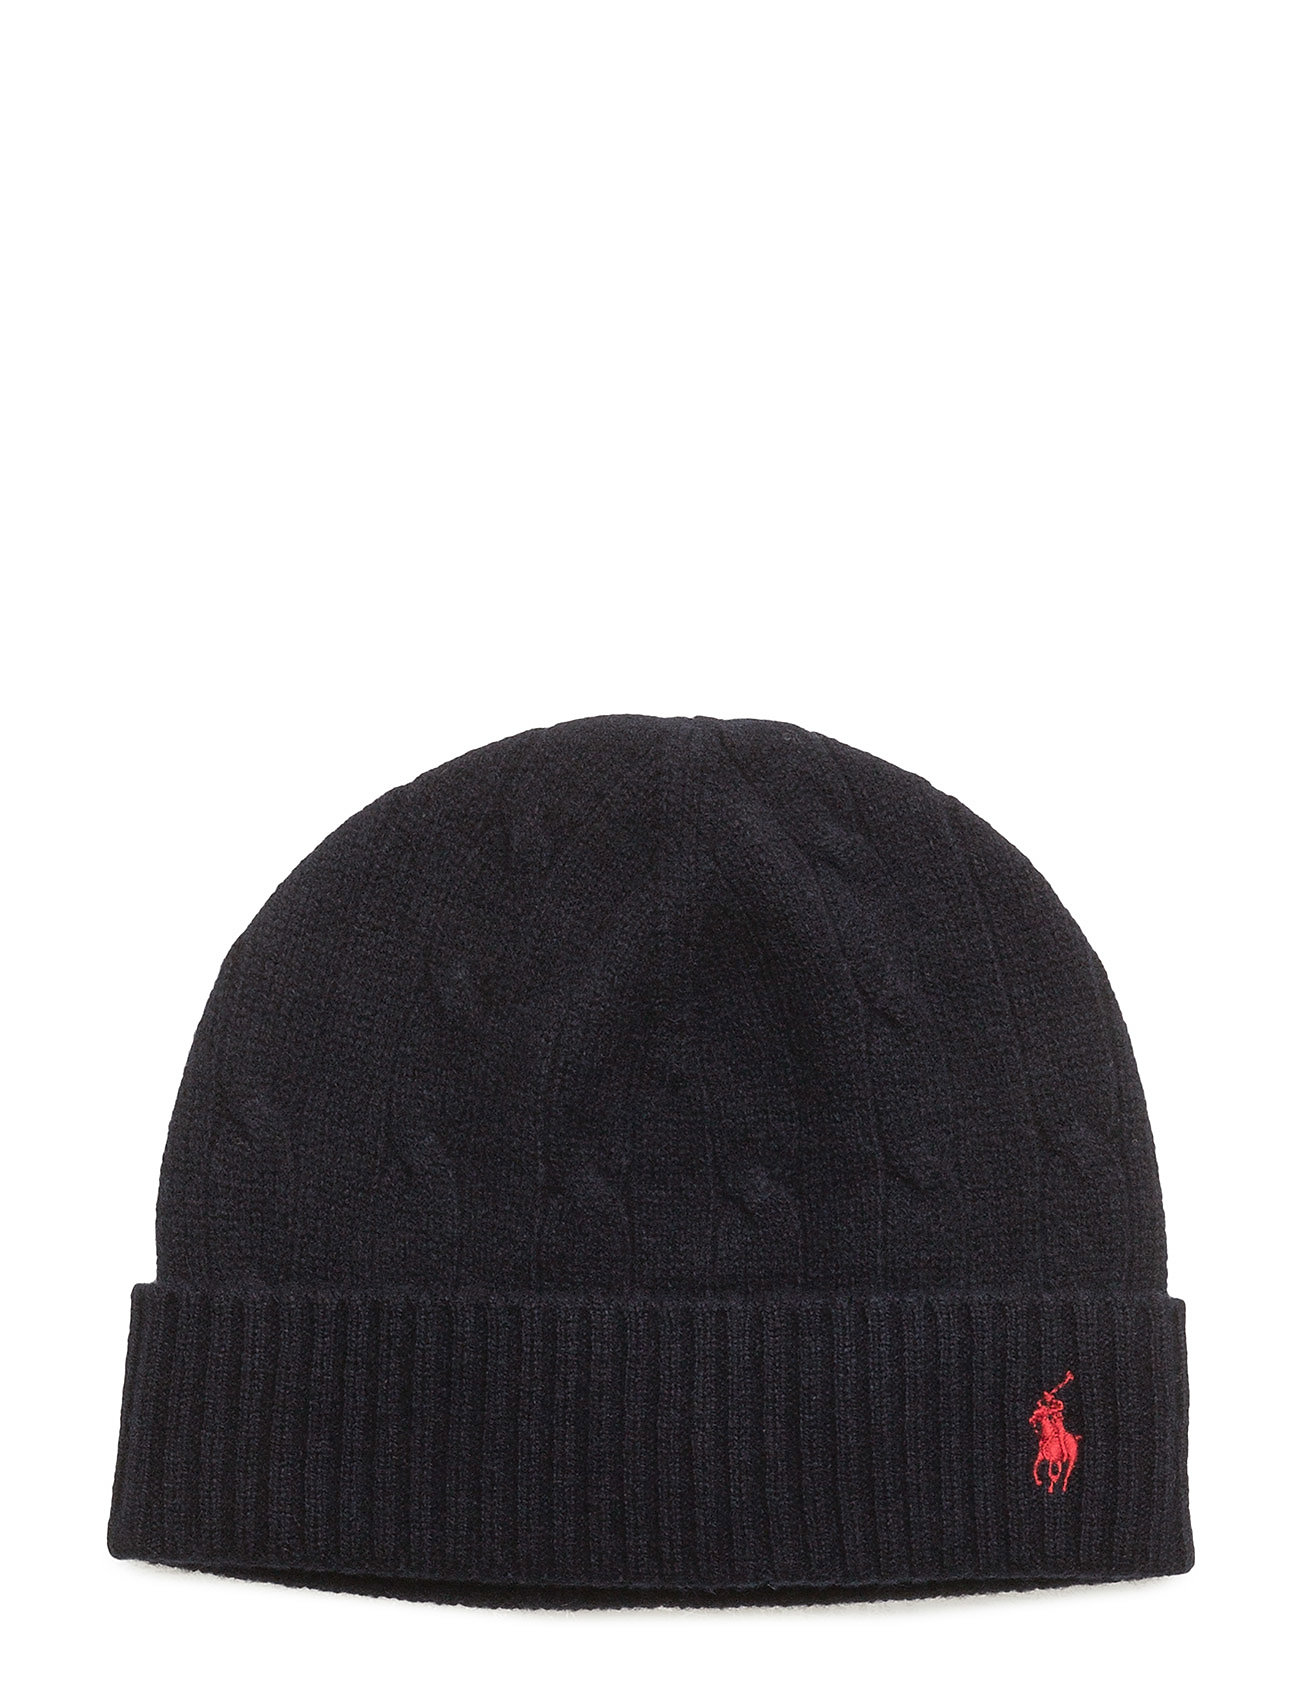 Cable-knit Wool-cashmere Hat (Navy) (68.25 €) - Ralph Lauren Kids ... f33f19073546